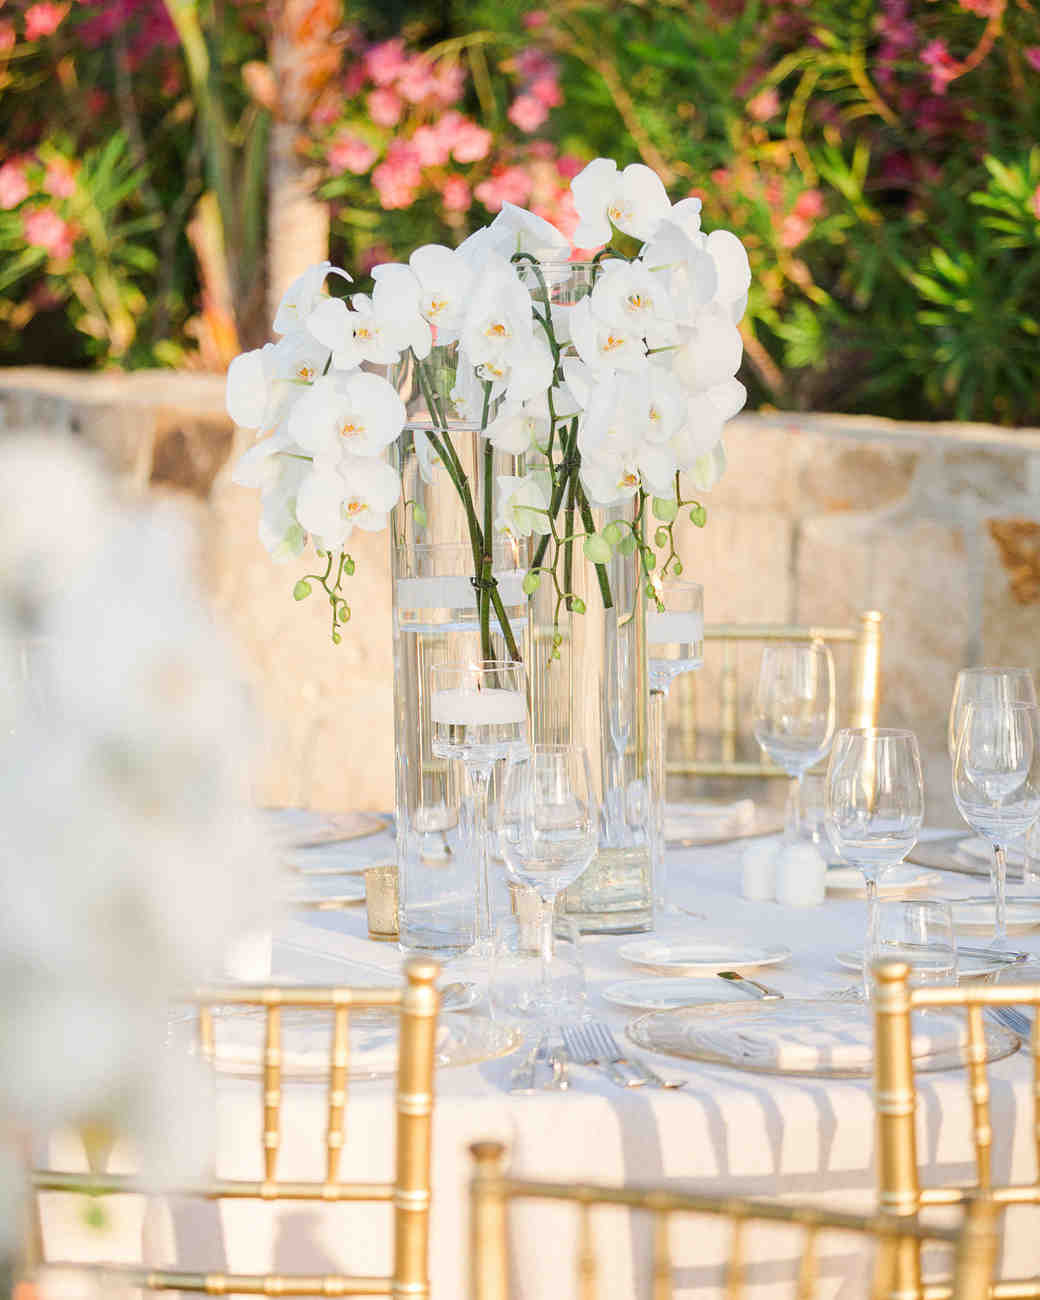 Modern Wedding Backdrop Ideas: Modern Wedding Centerpieces